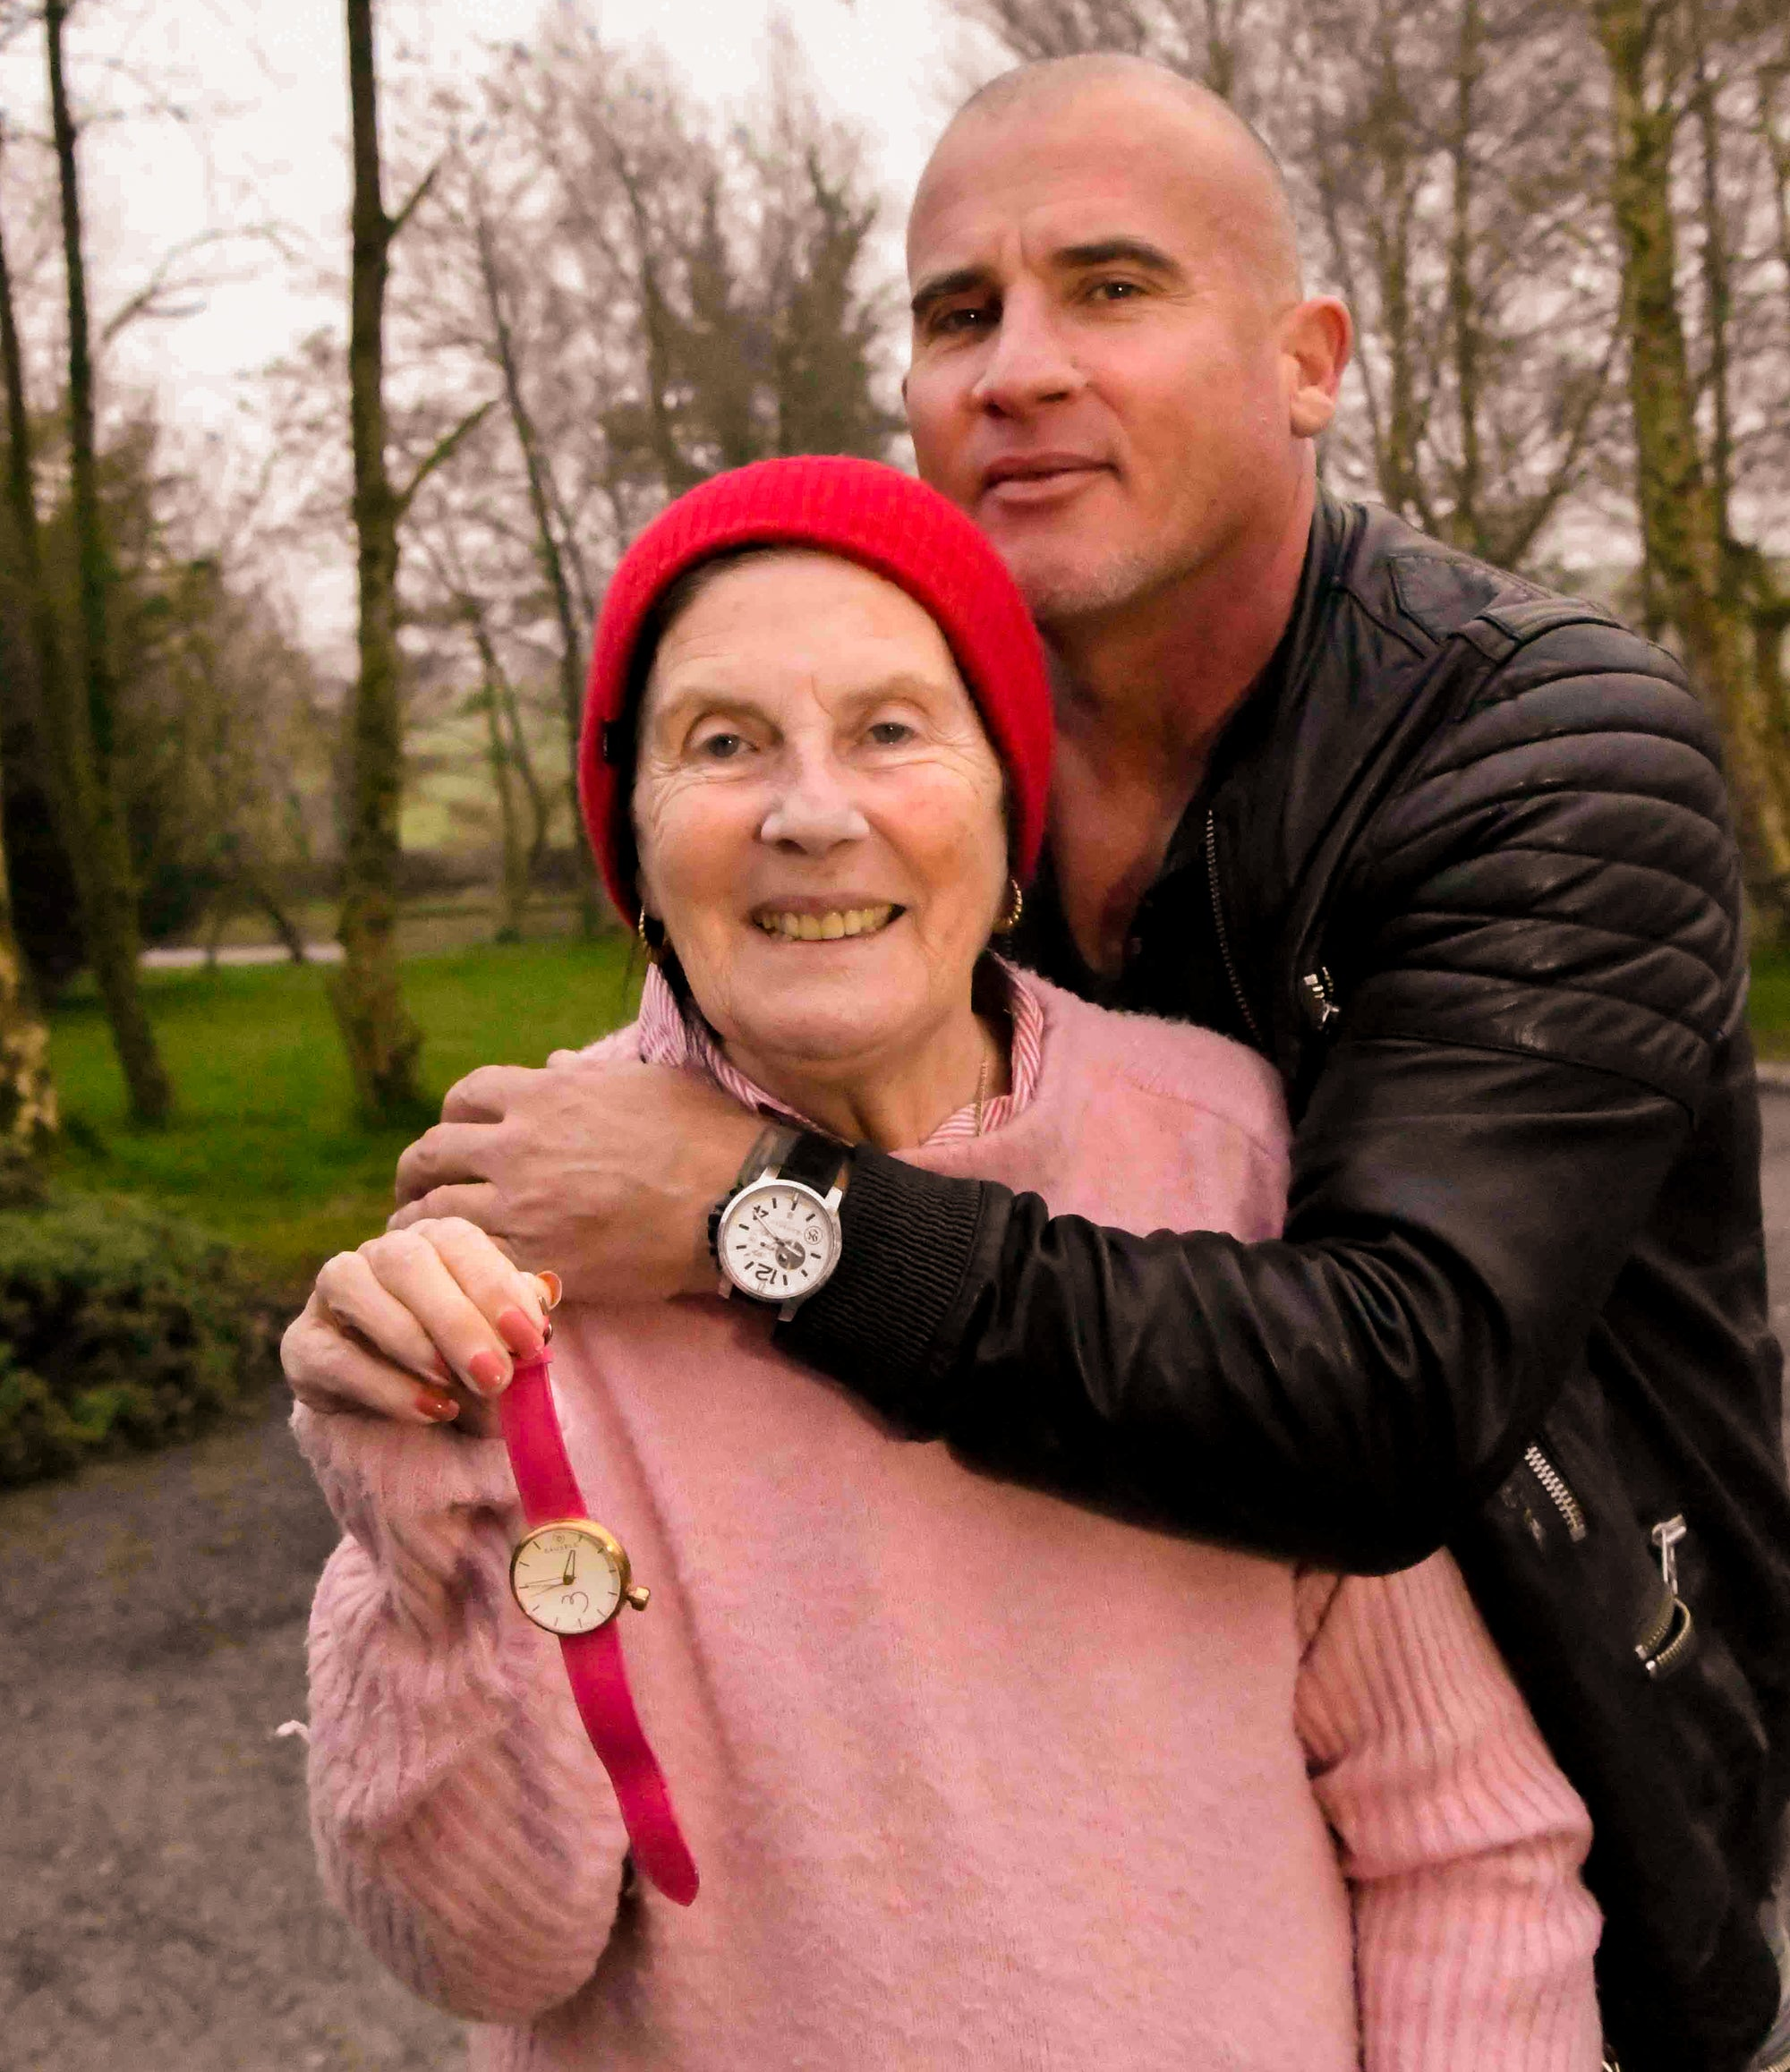 Prison Break star Dominic Purcell's travels to Ireland with an early mother's day gift!